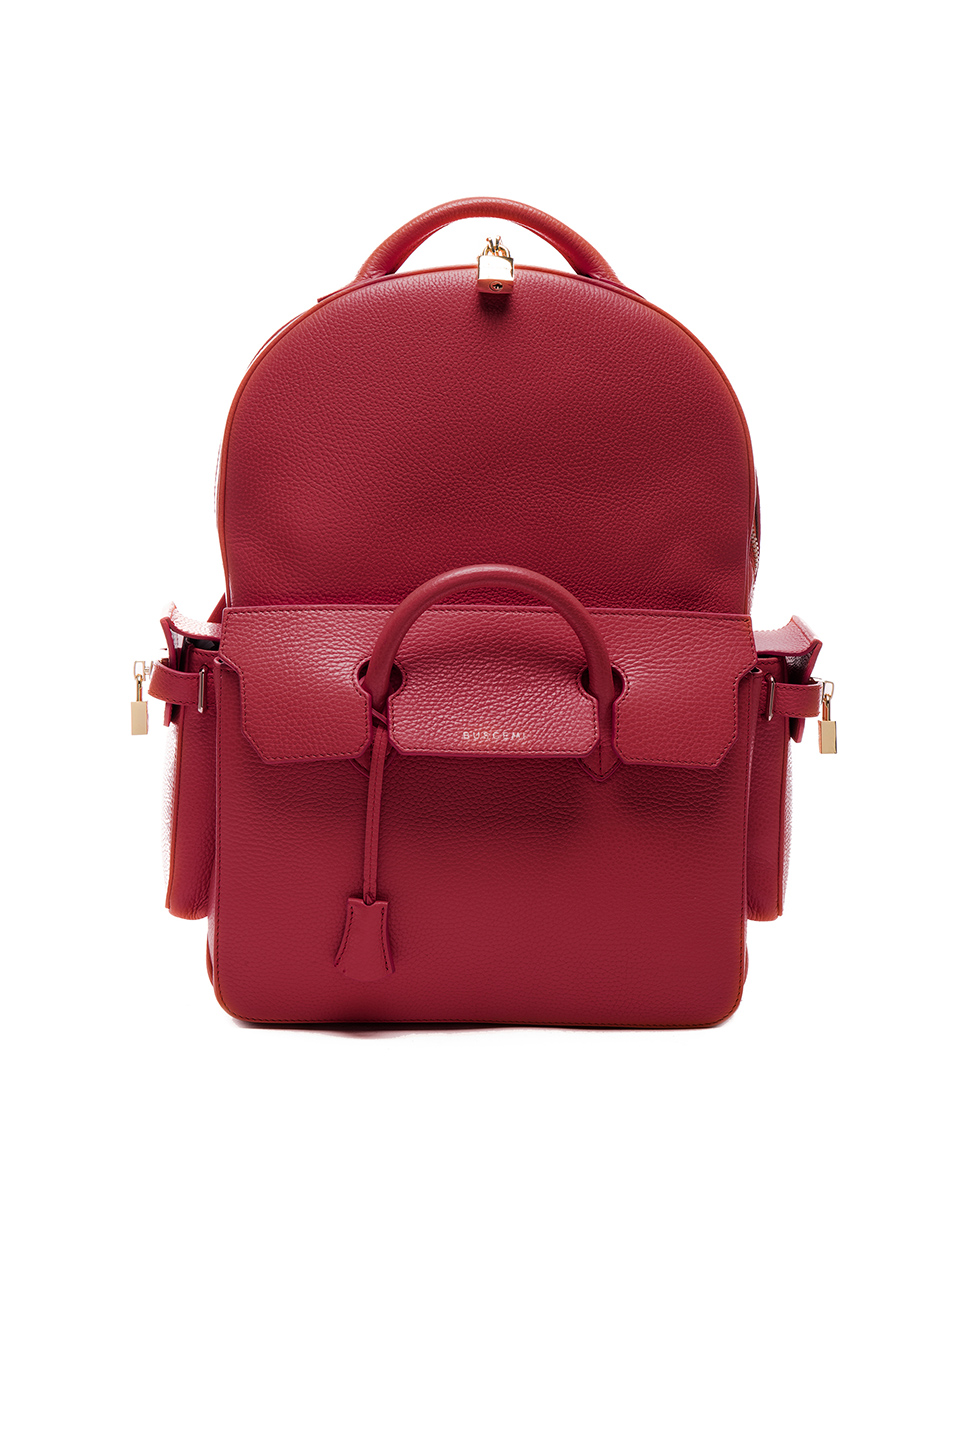 Buscemi PHD Backpack in Red